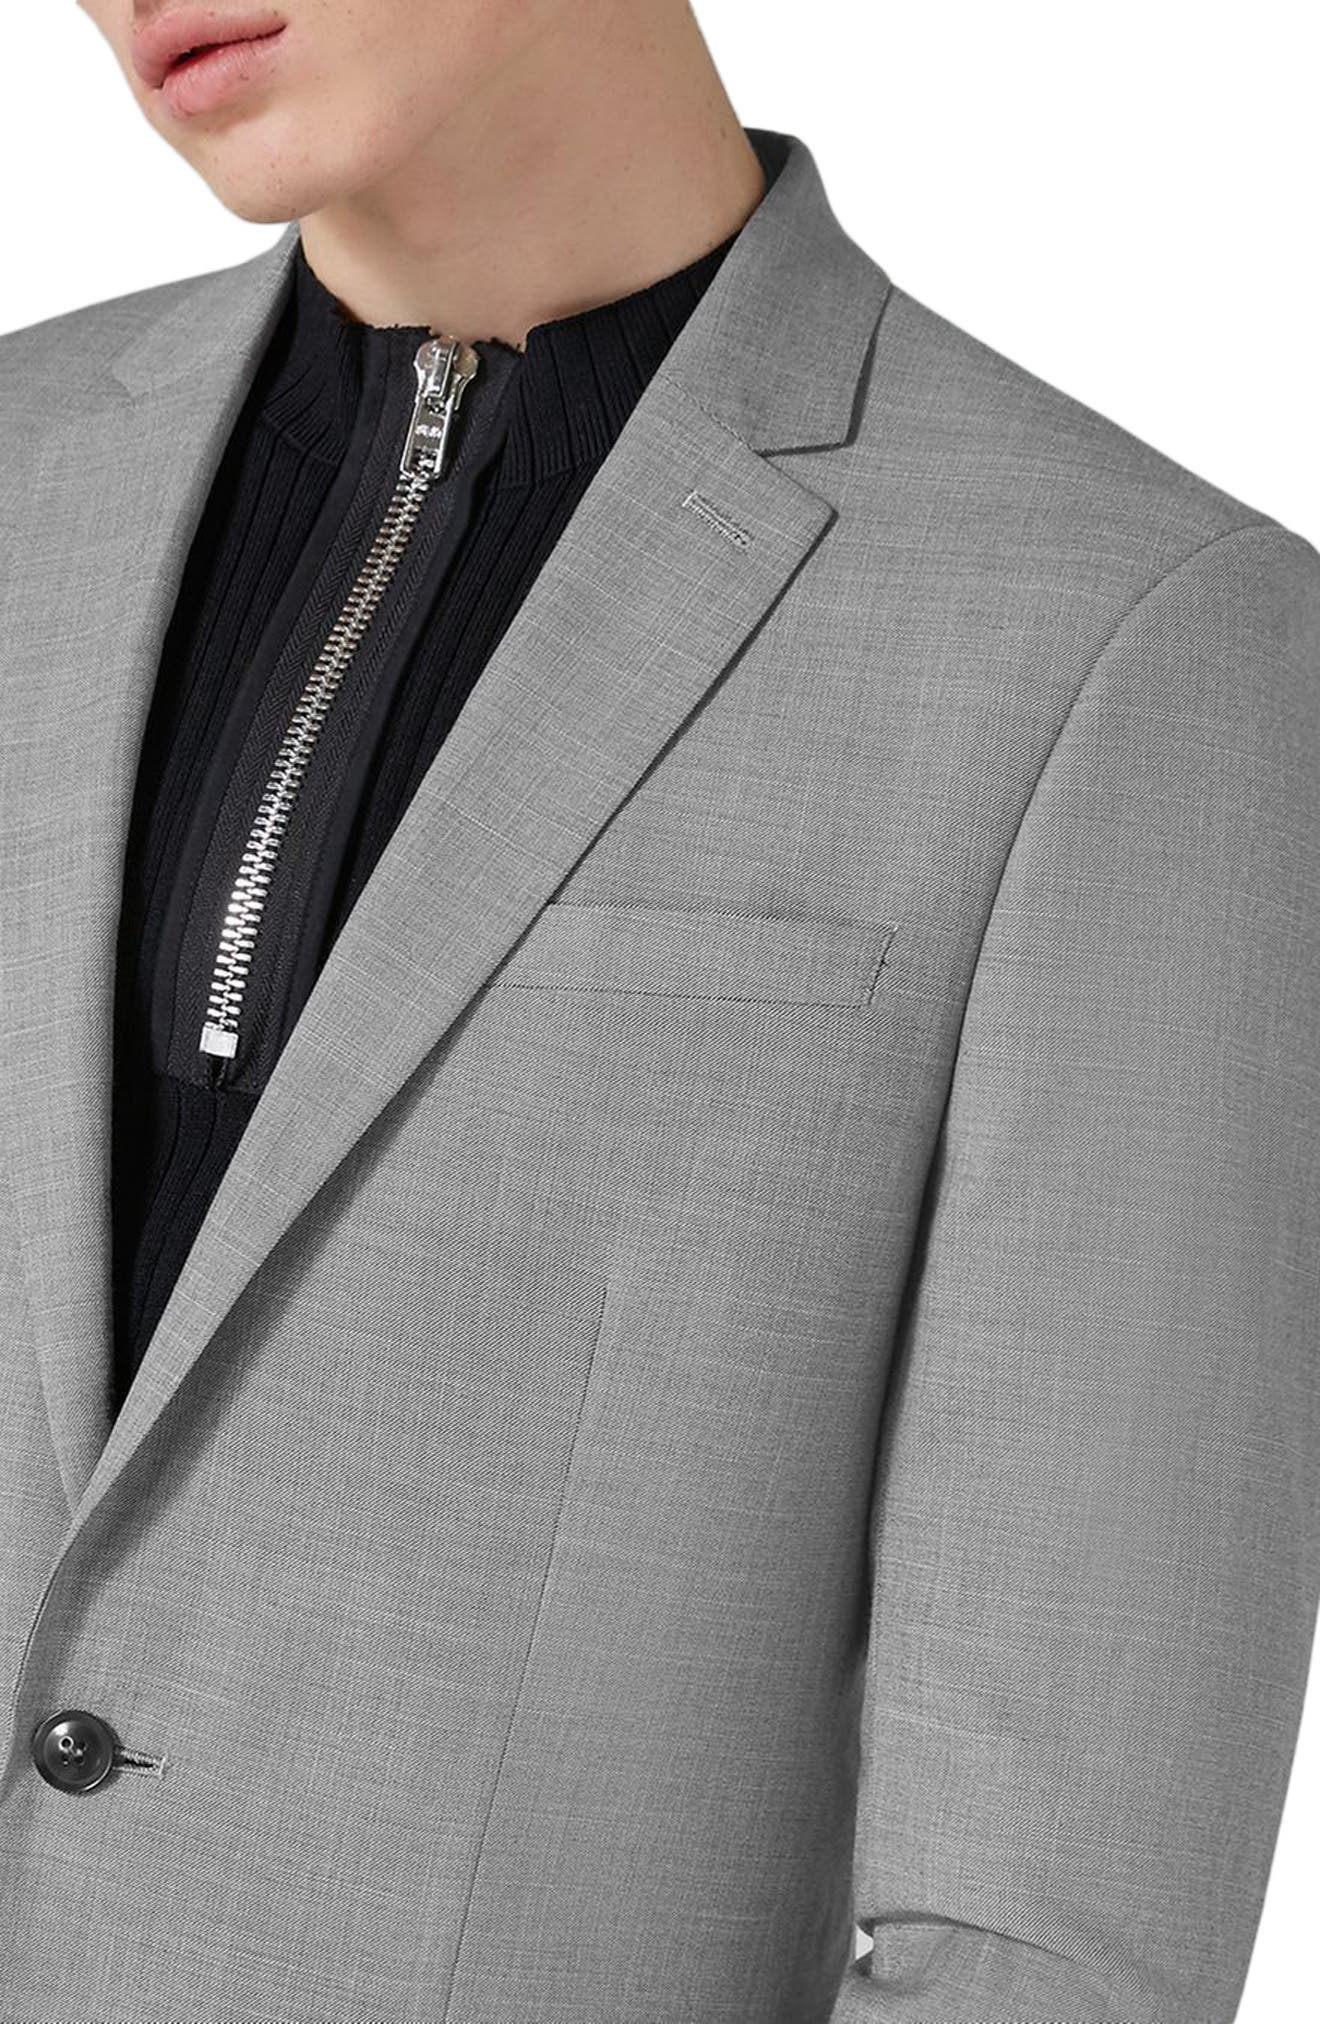 Skinny Fit Suit Jacket,                             Alternate thumbnail 4, color,                             Grey